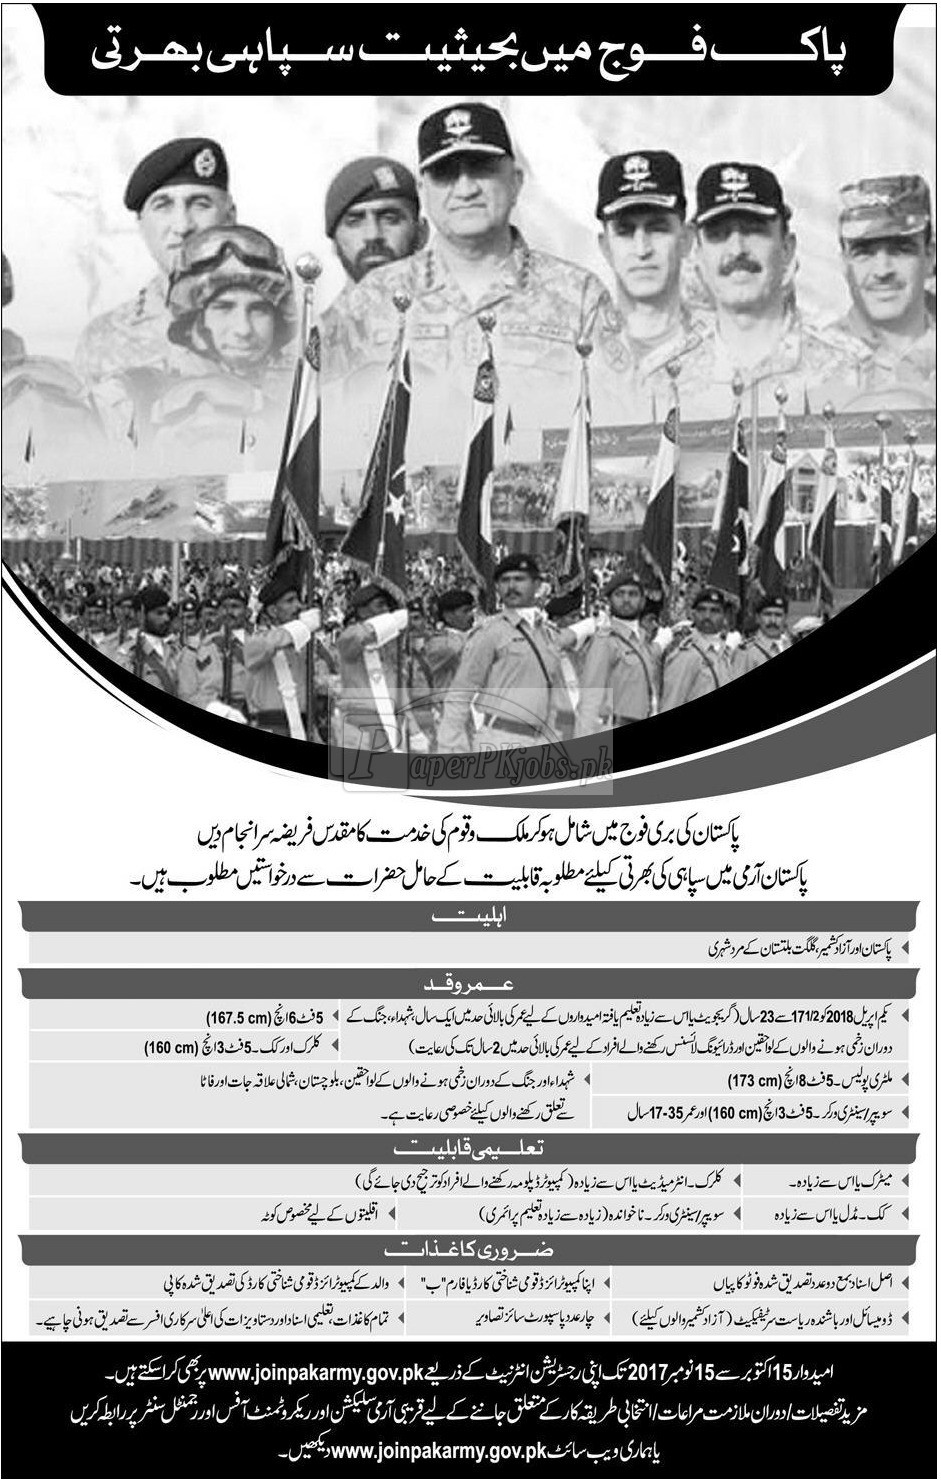 Join Pak Army as Soldier (Sipahi) 2017